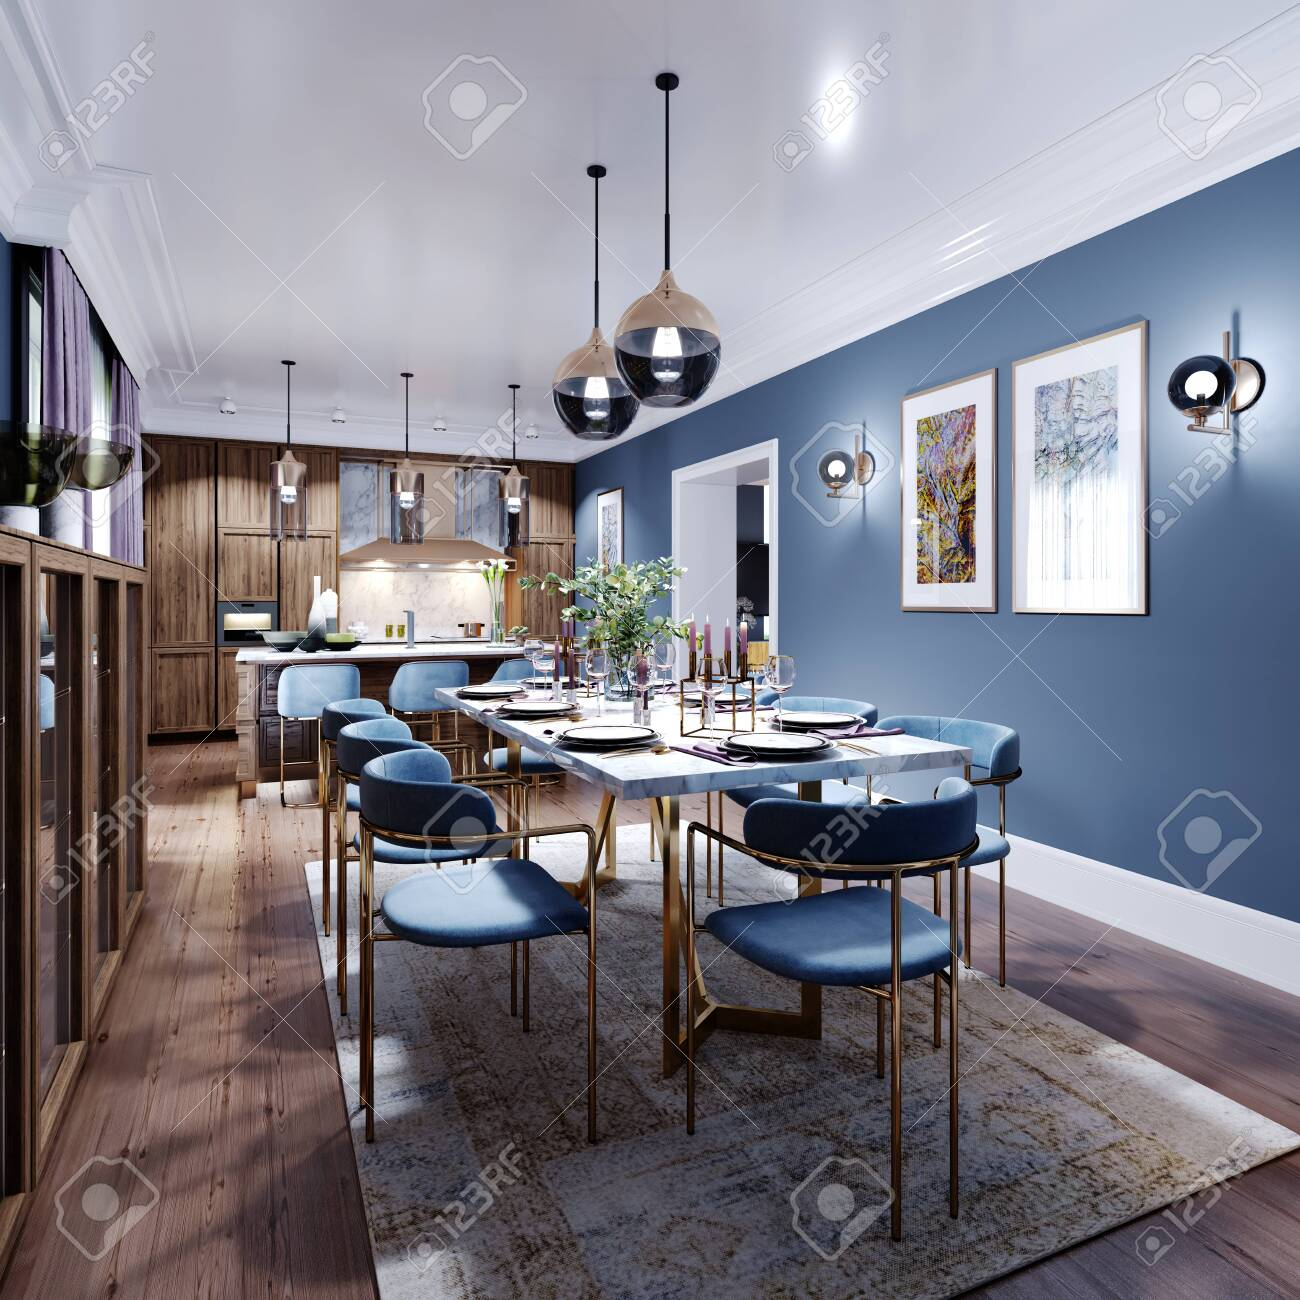 Large Dining And Dining Room Table With A Kitchen In A Fashionable Stock Photo Picture And Royalty Free Image Image 150374053